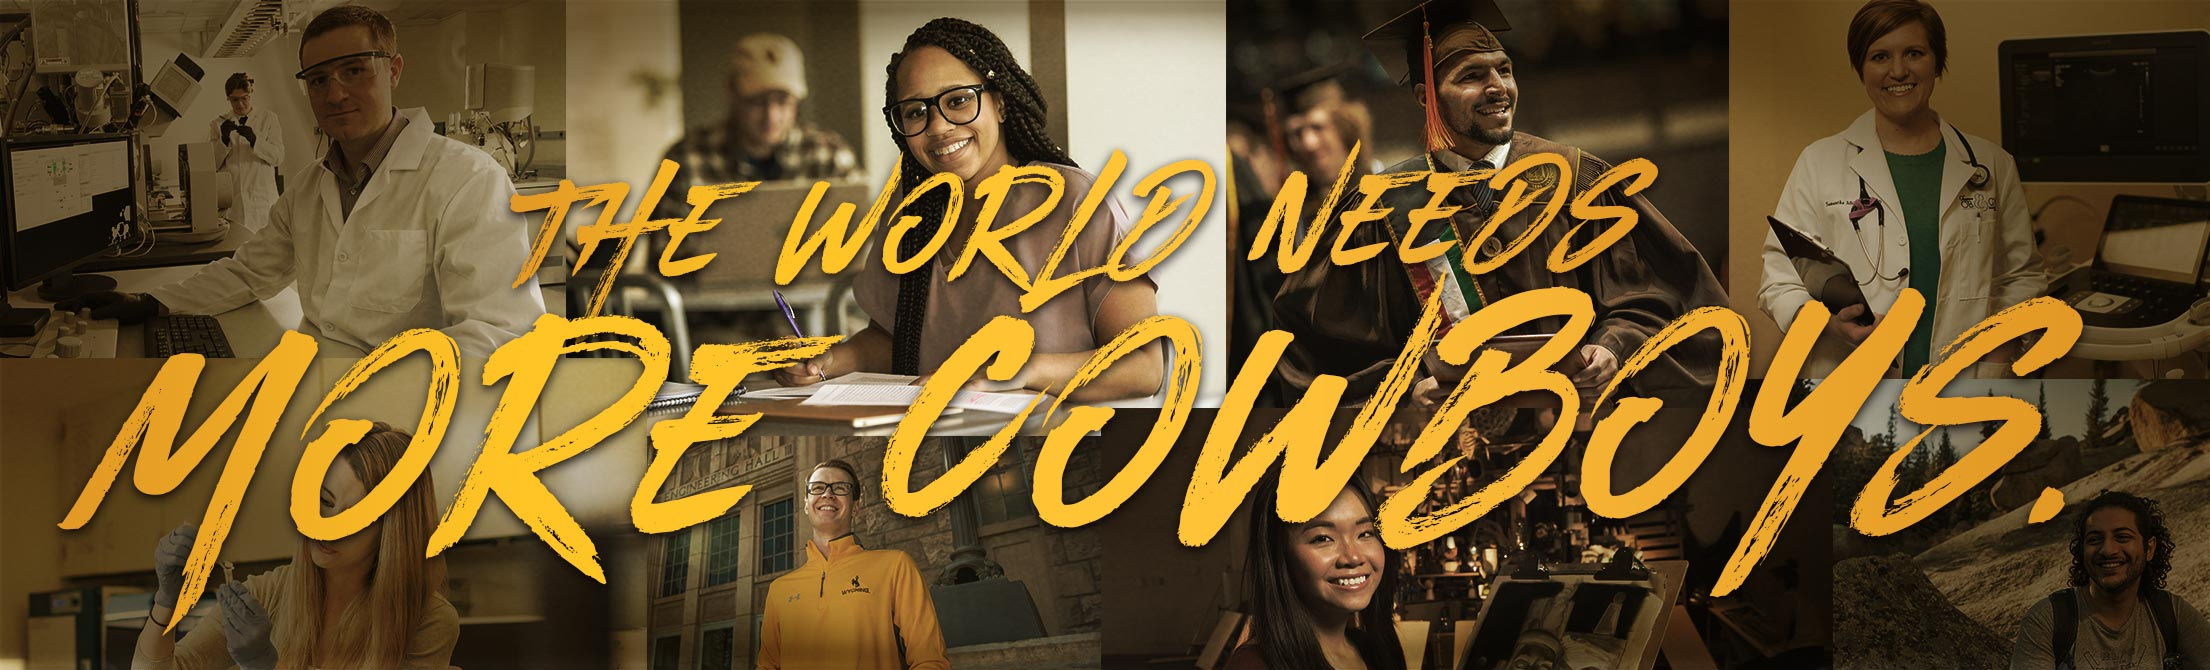 The World Needs More Cowboys slogan overlaying a collage of a variety of students from different departments.